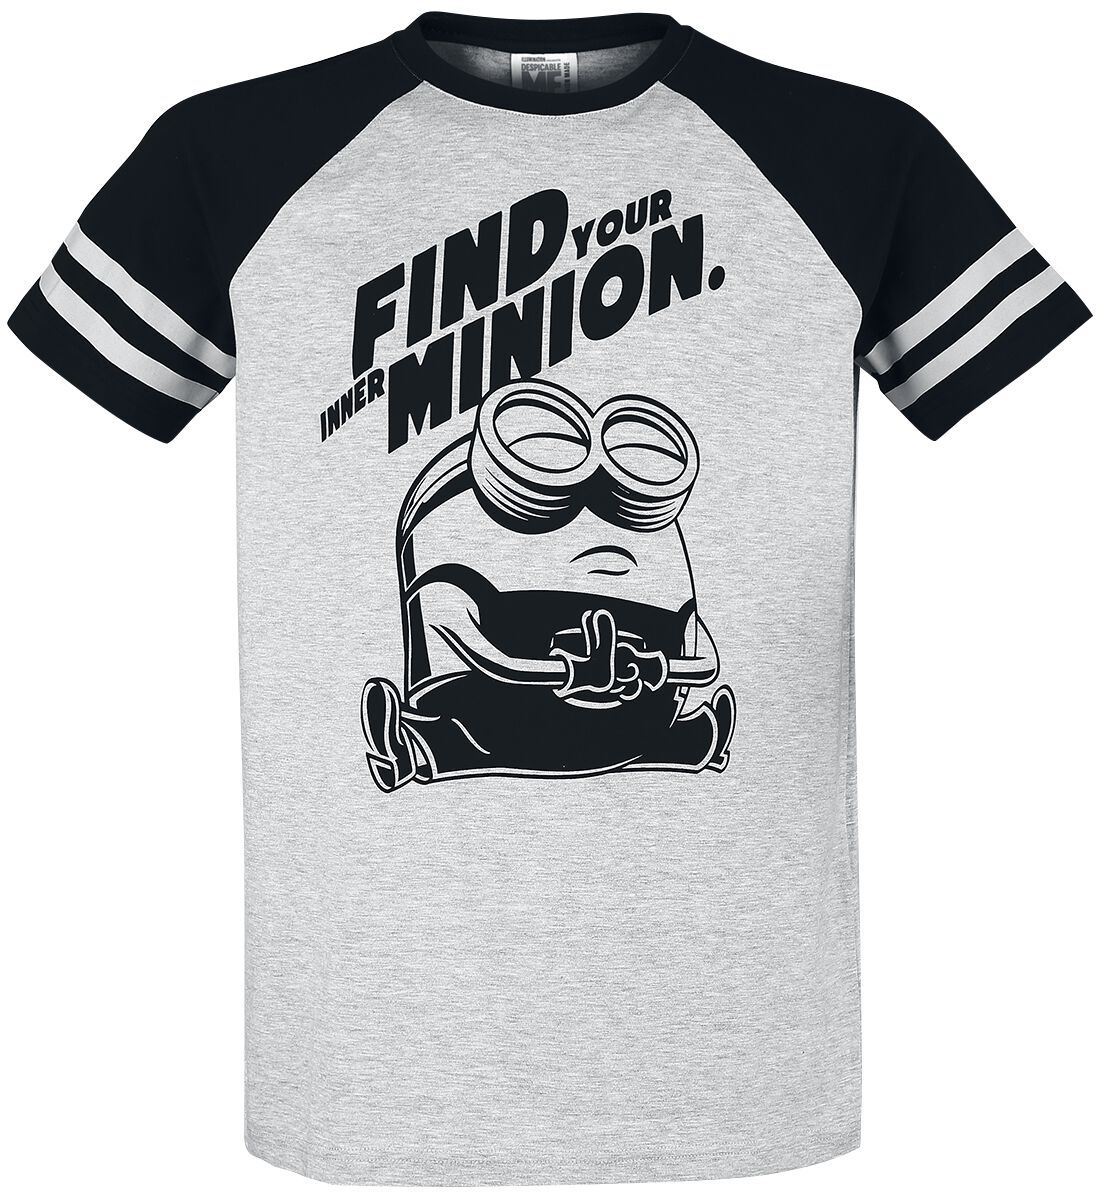 Image of Minions Find Your Inner Minion T-Shirt grigio screziato/nero